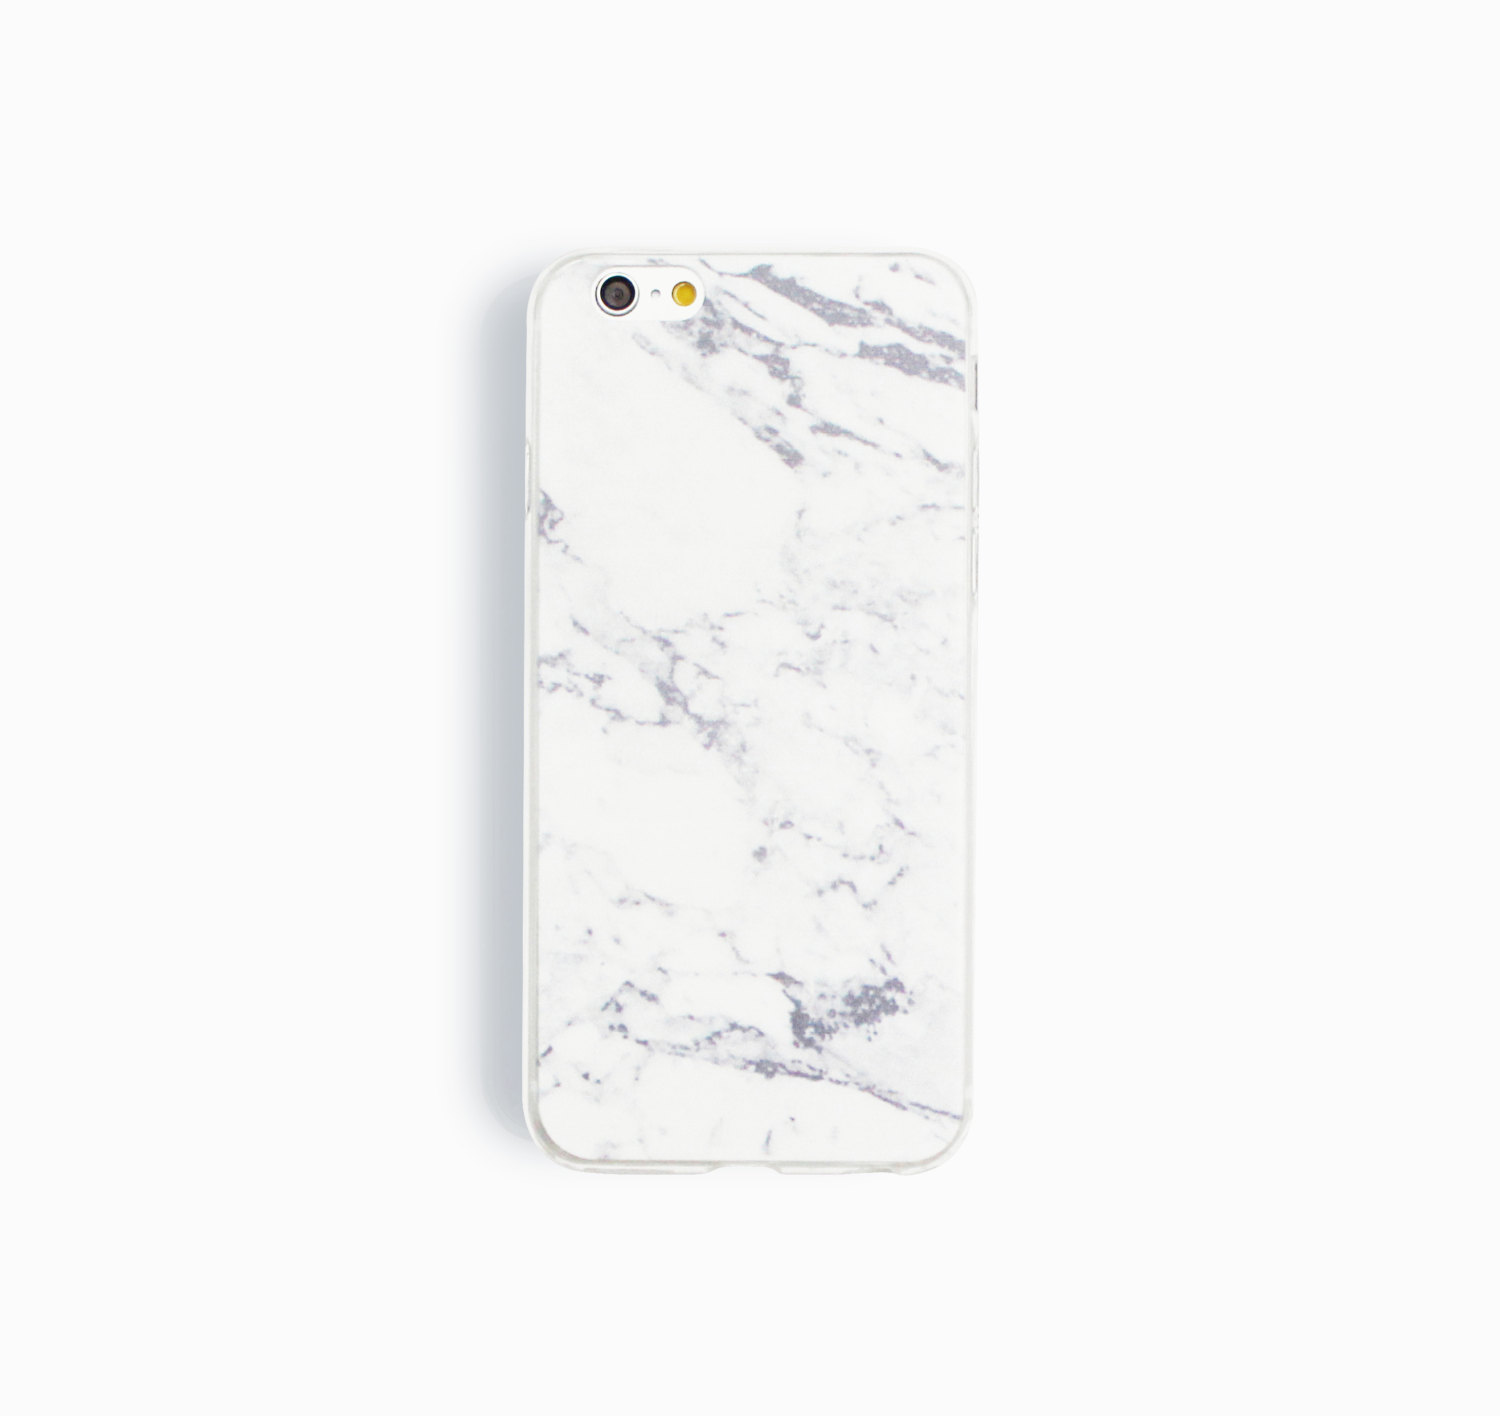 buy online 16a4e a5b46 Marble iPhone case, white marble iPhone 5 5s case, iPhone 6 6s case, iPhone  6 6s plus case, white iPhone SE case